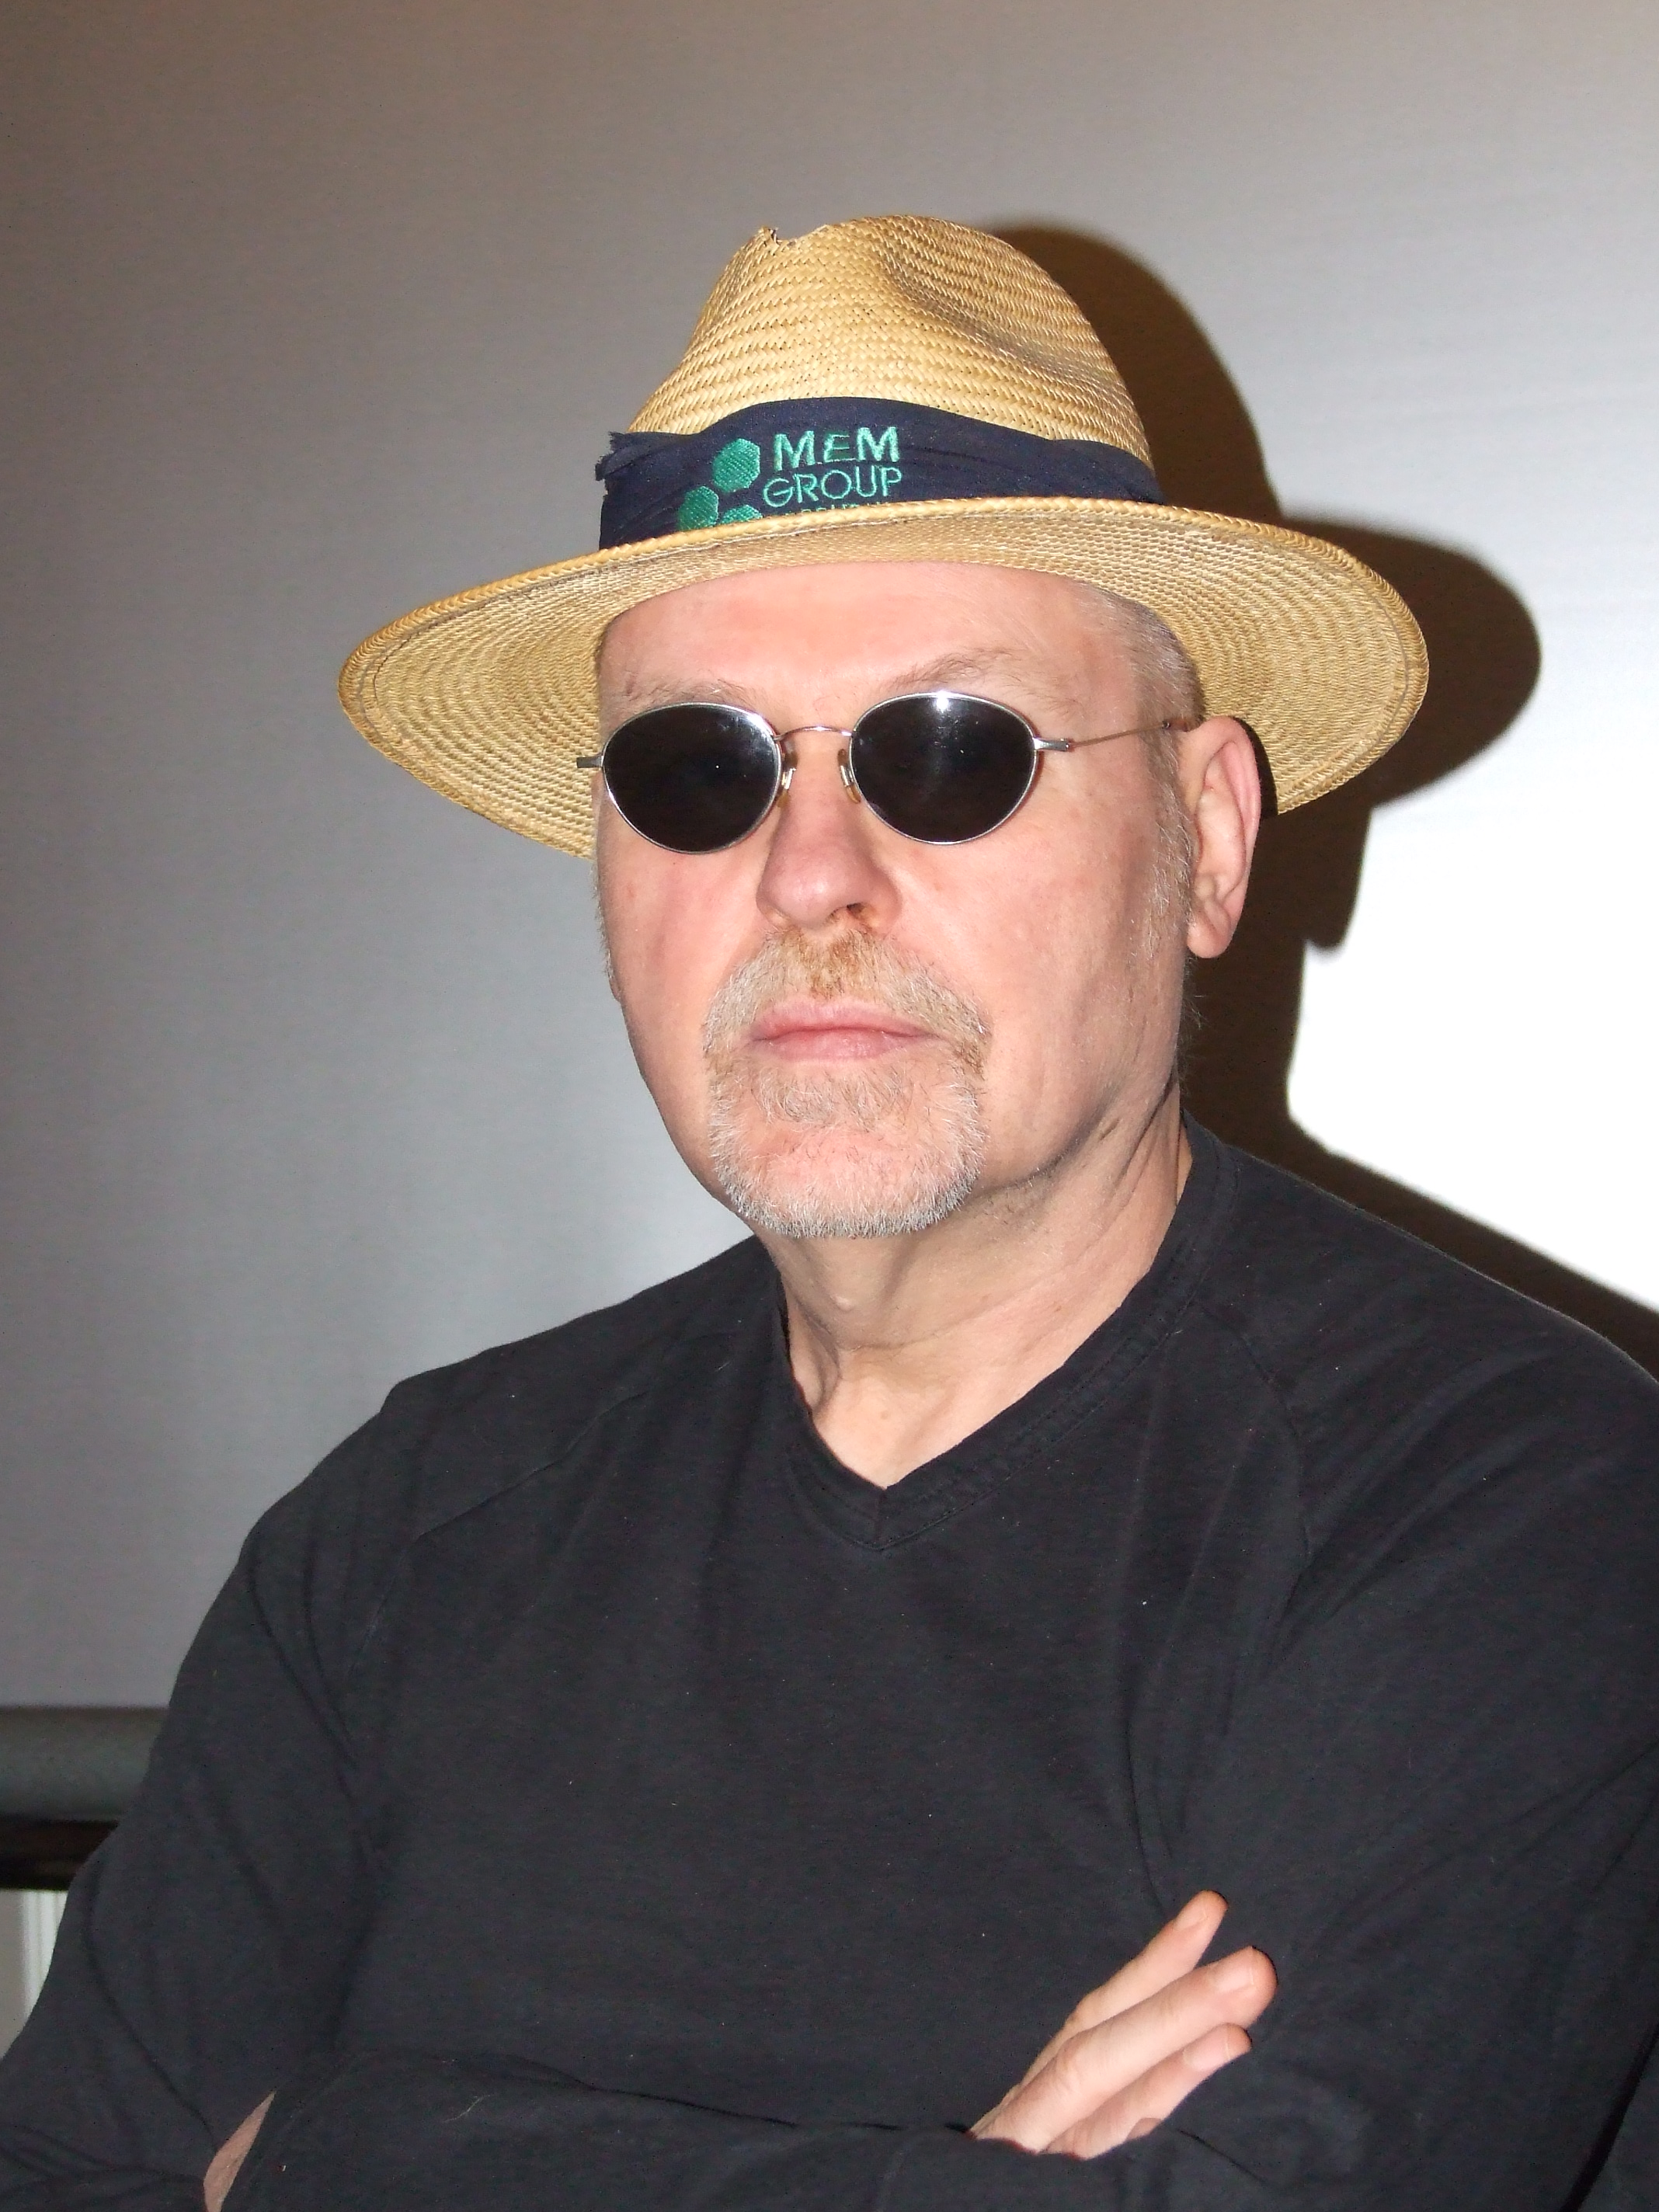 #manwithhatandsunglasses - in the summertime